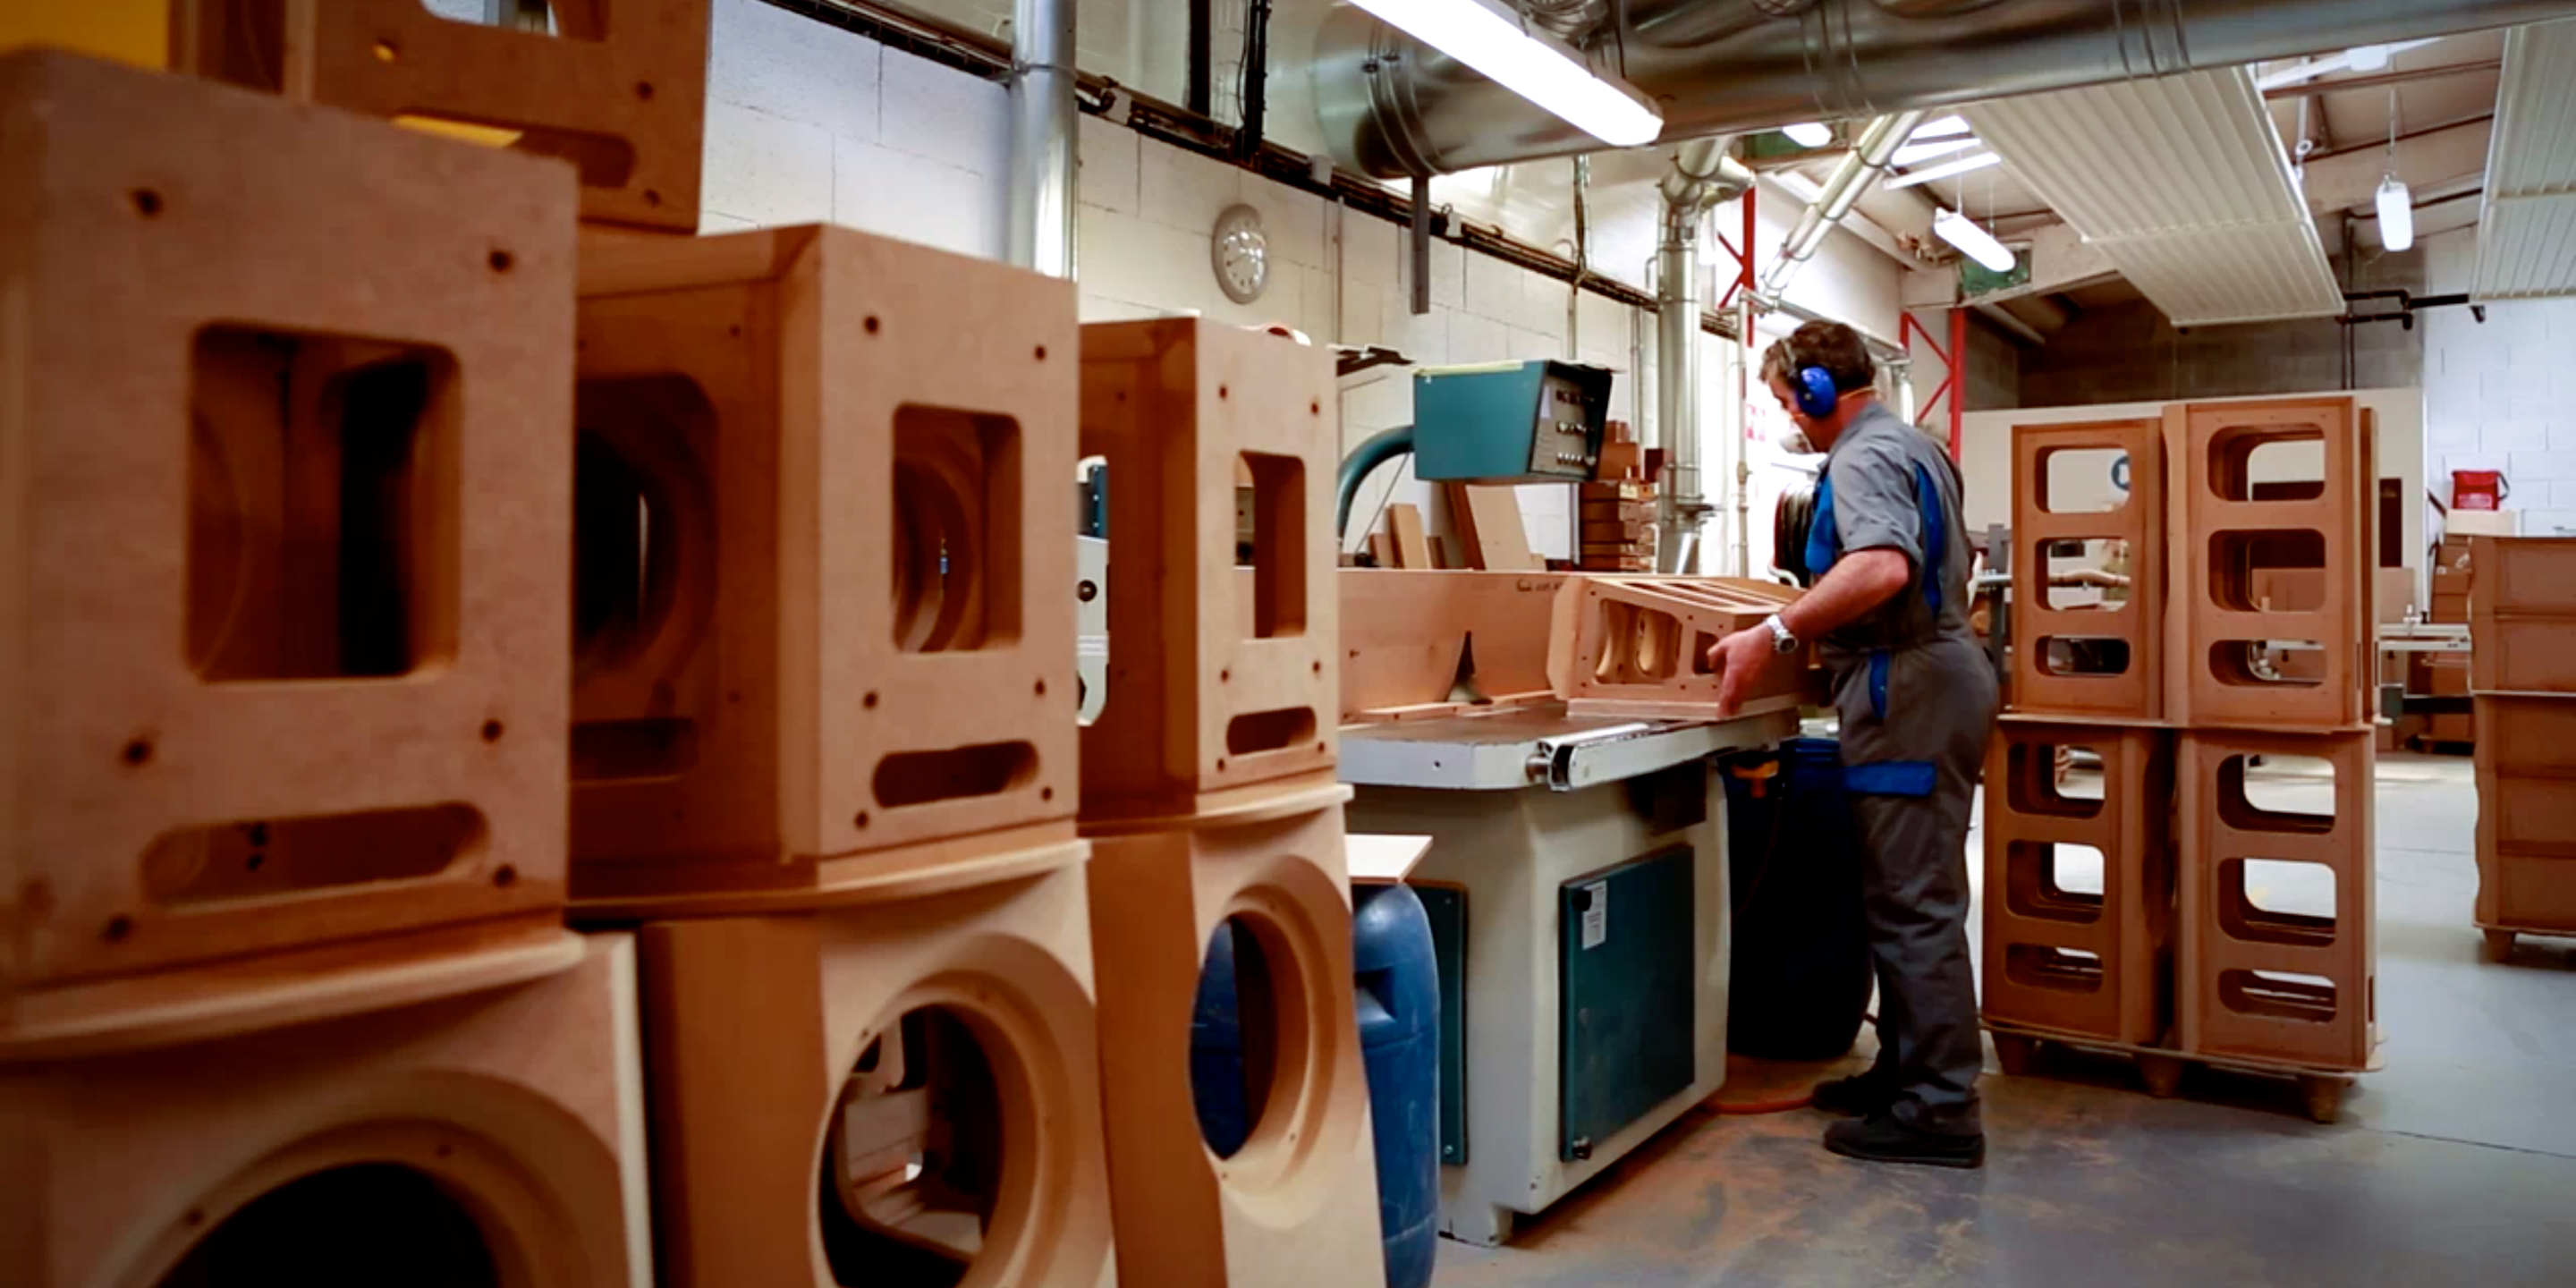 Fabricating speaker enclosure's at Focal's facility in Bourbon Lancy